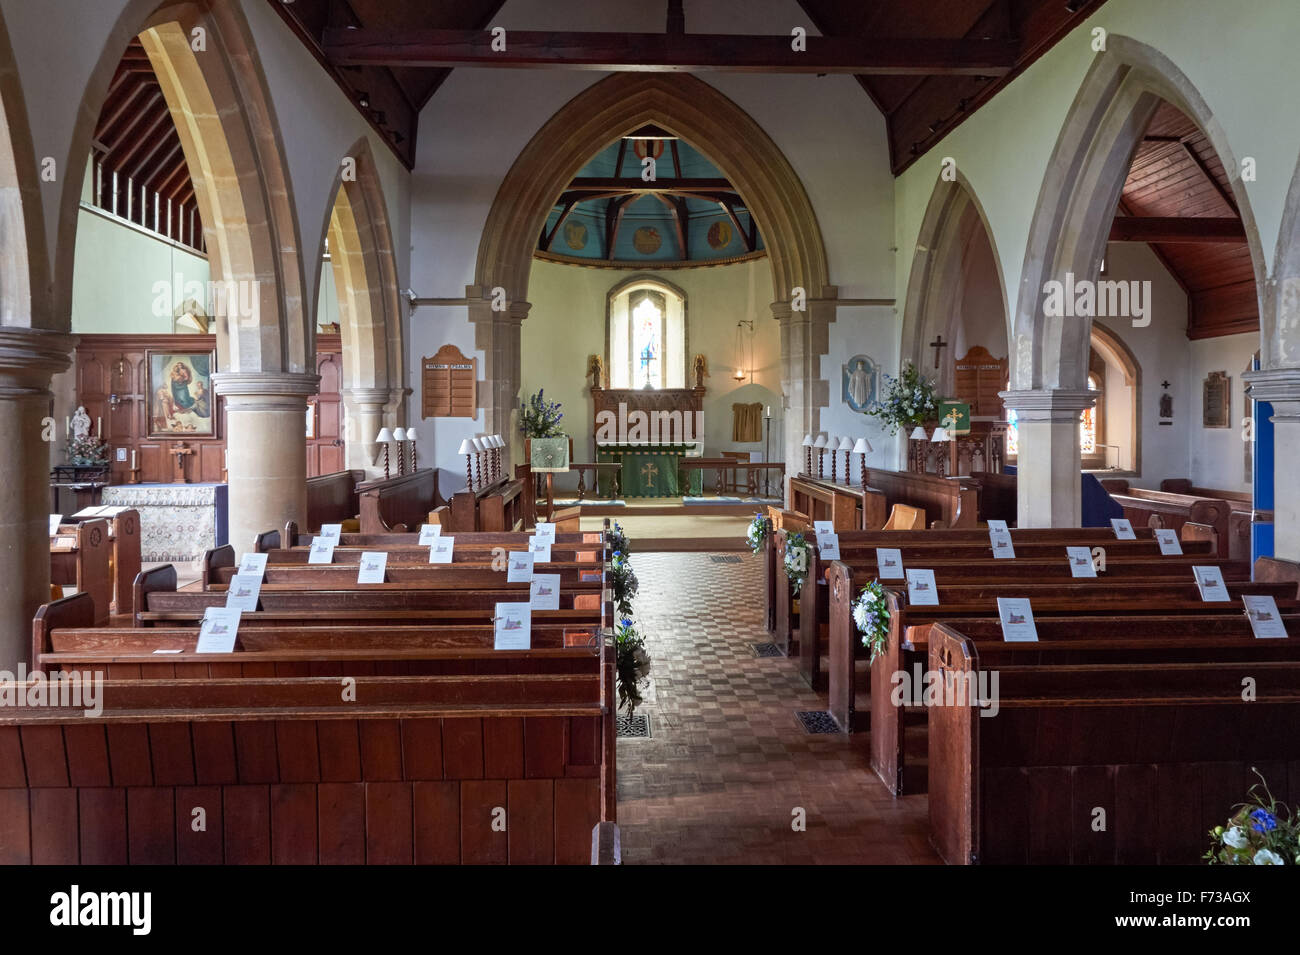 Interior of the Saint Cosmas and Saint Damian Church in the village of Keymer, West Sussex England United Kingdom - Stock Image